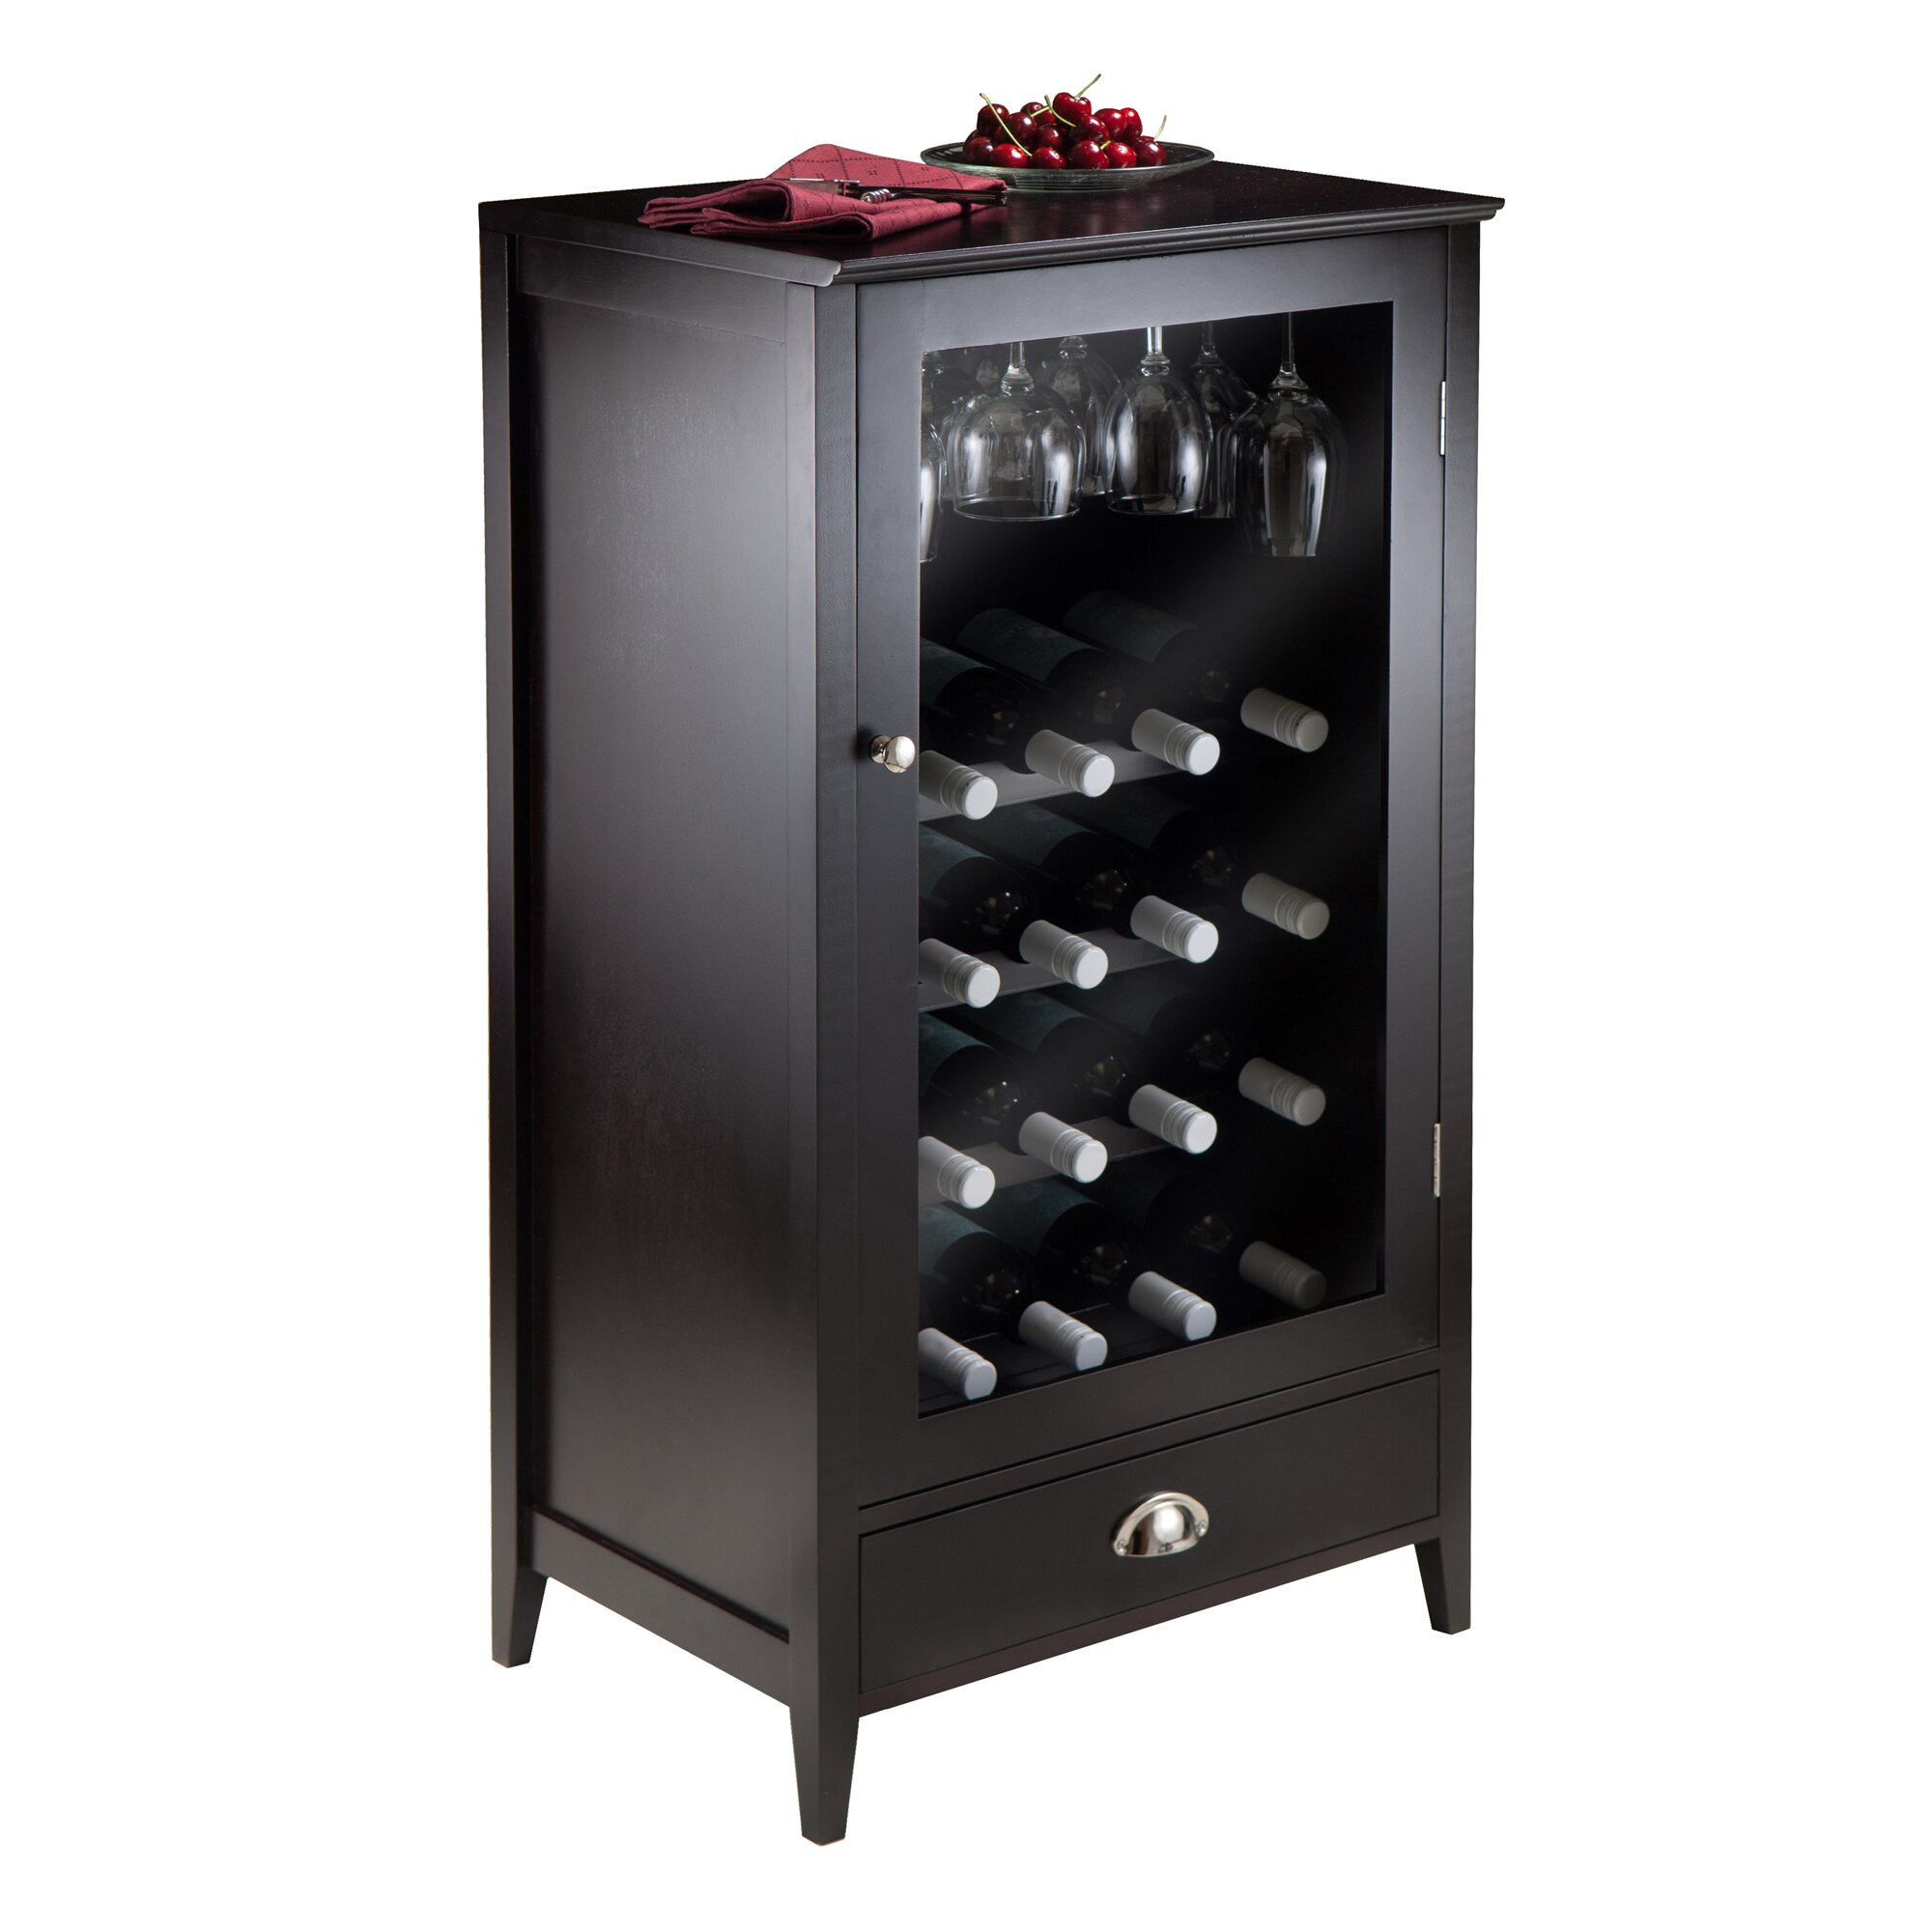 Winsome bordeaux 20 bottle floor wine cabinet reviews for Floor wine cabinet